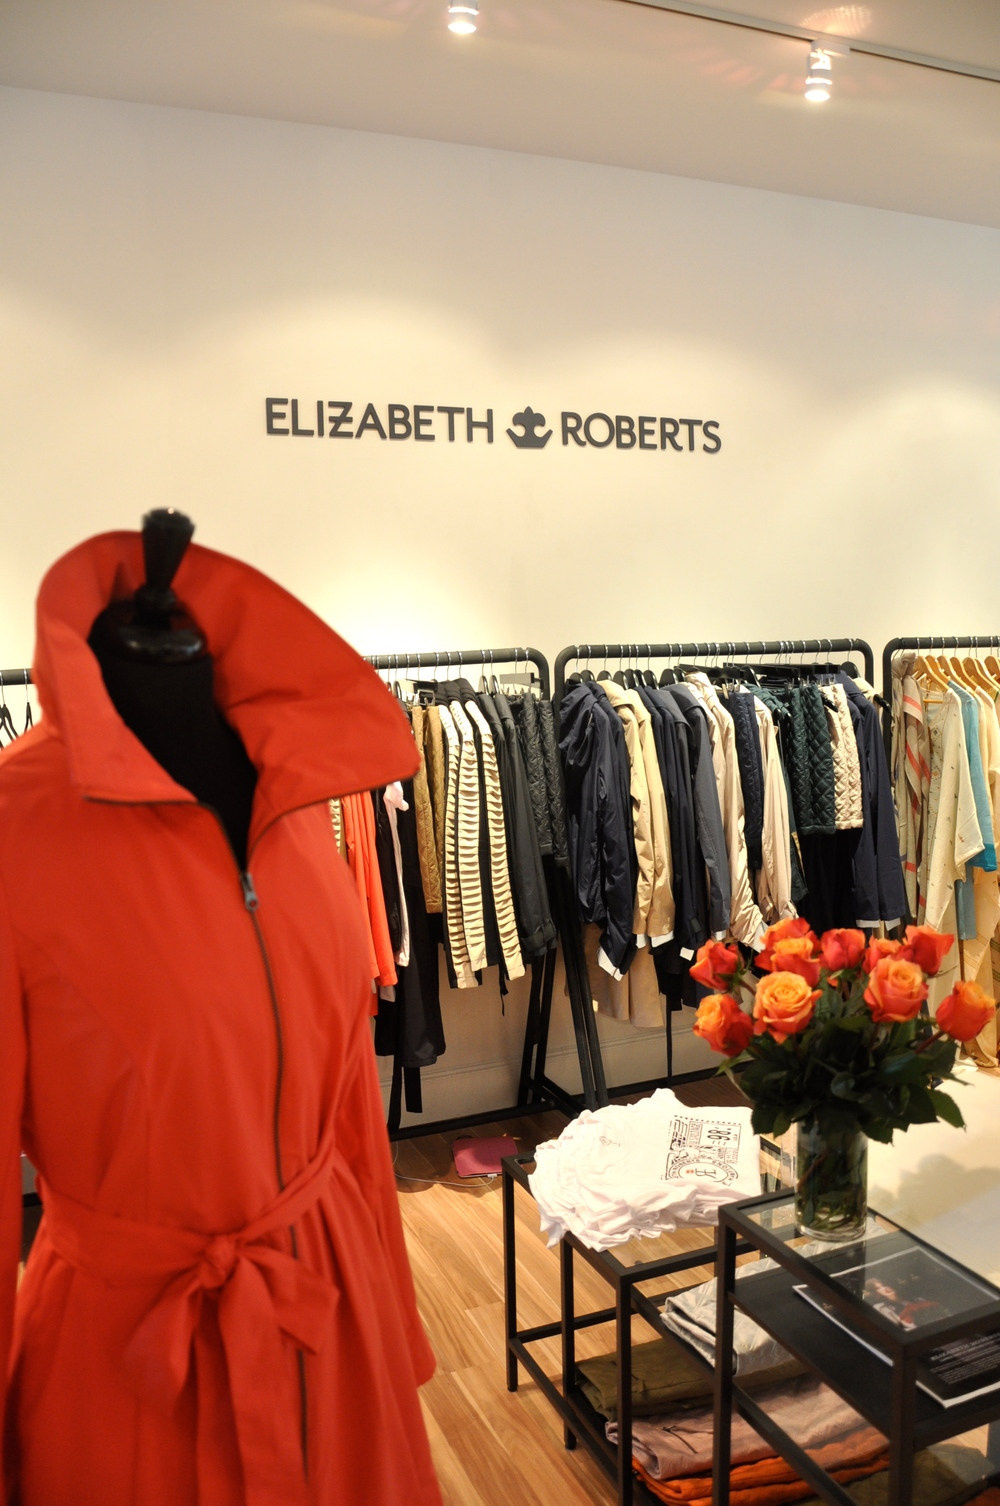 Elizabeth Roberts featured her Fall jacket collection